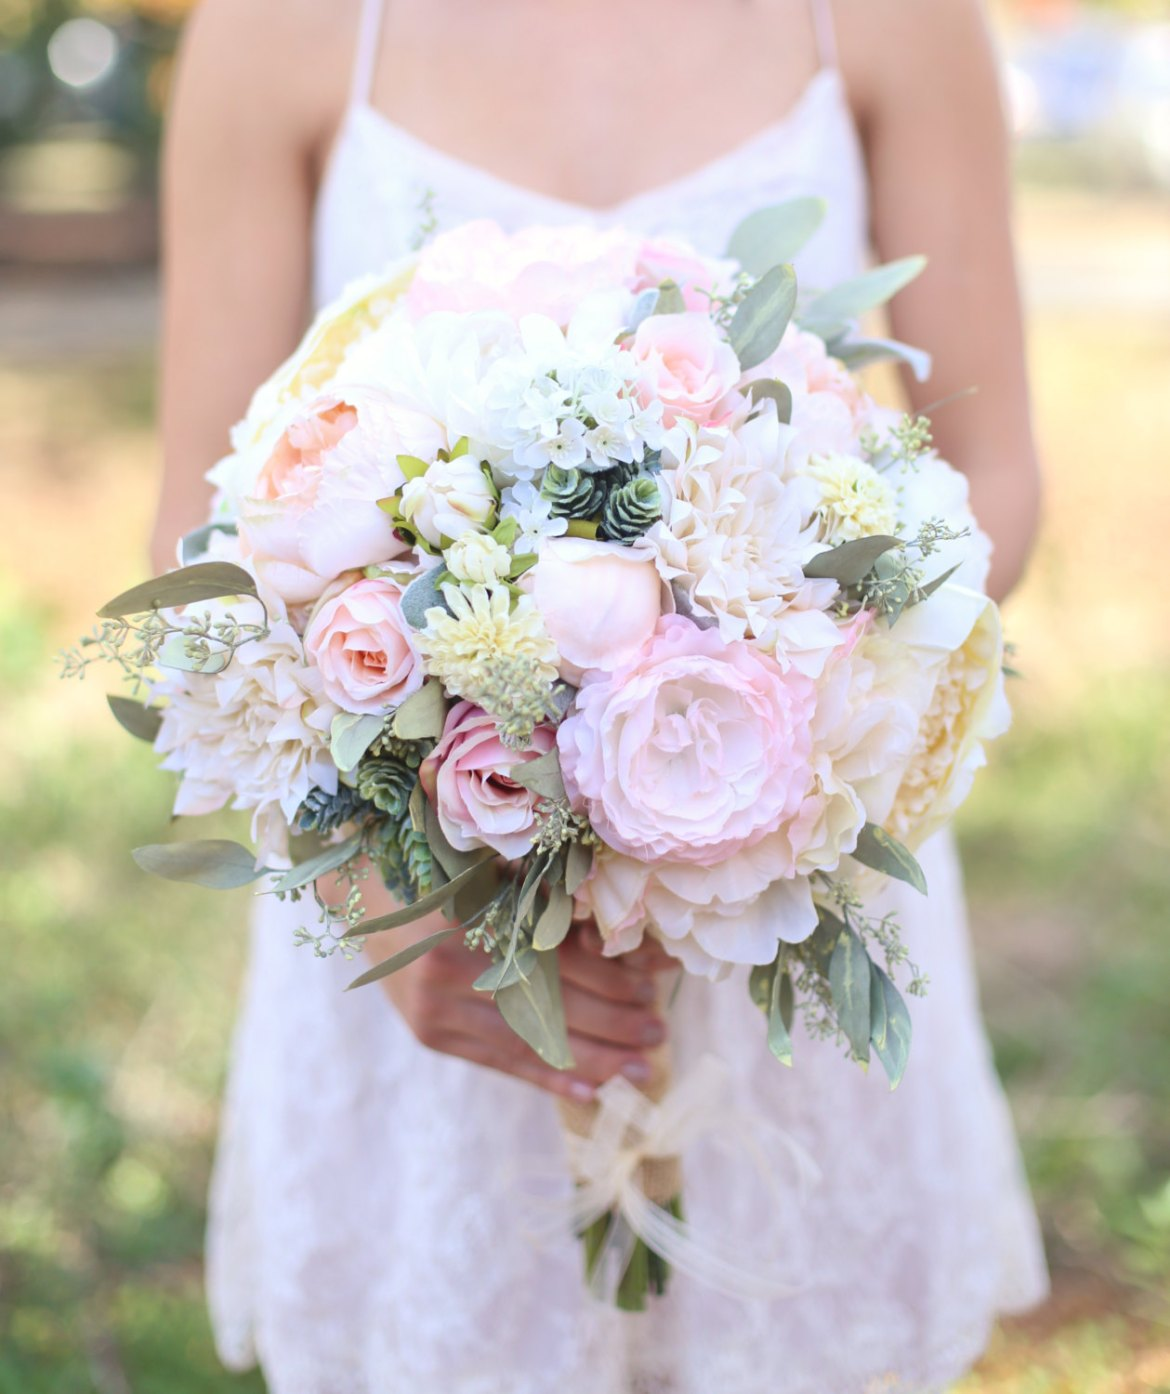 What To Carry Down the Aisle Instead of Flowers - BridalPulse